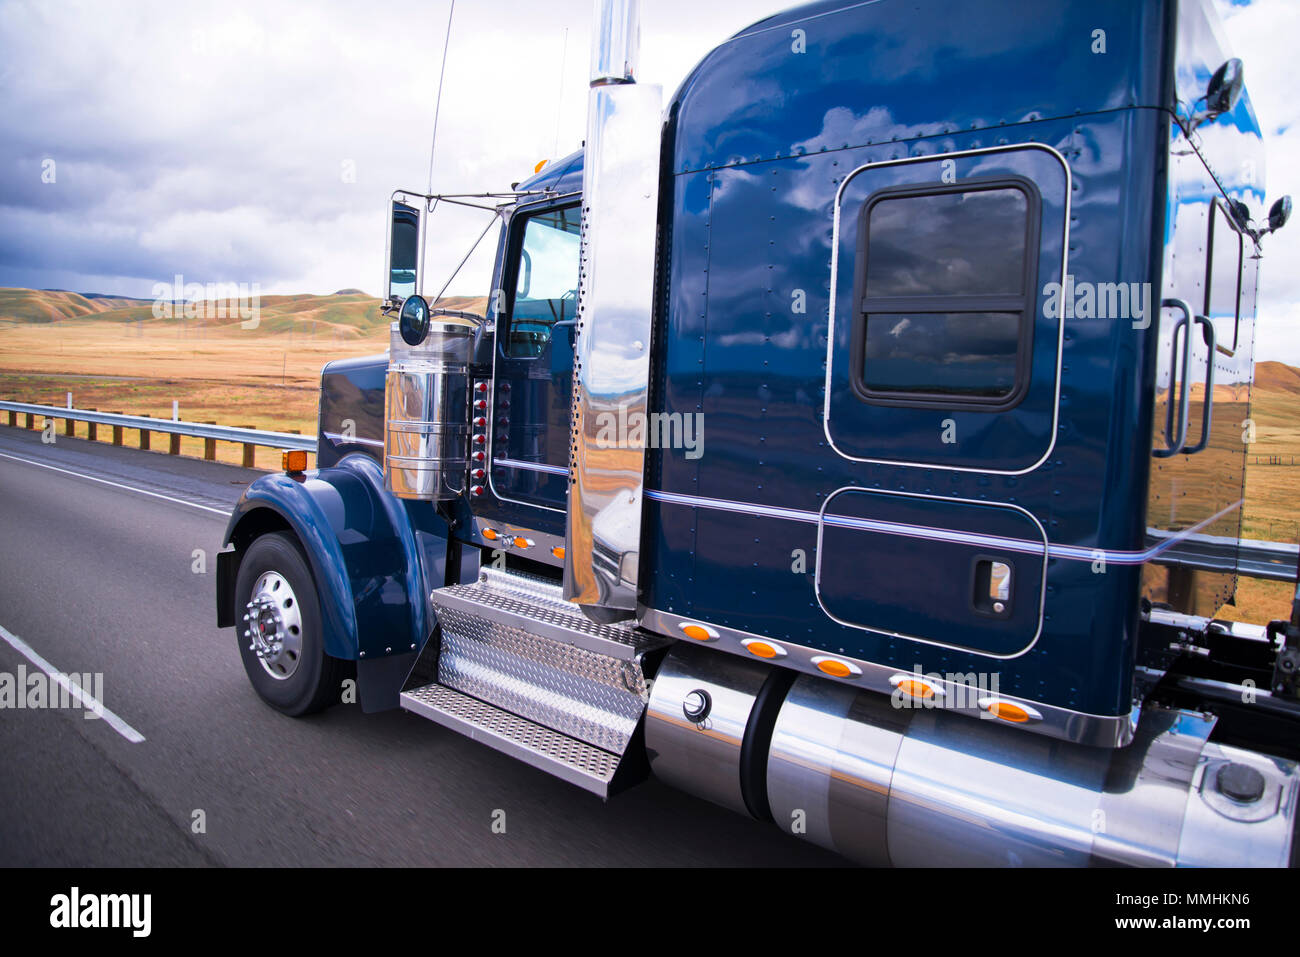 Dark blue shiny classic American big rig semi truck with chrome accessories with reflection on cab surface running on the road with yellow summer fiel - Stock Image